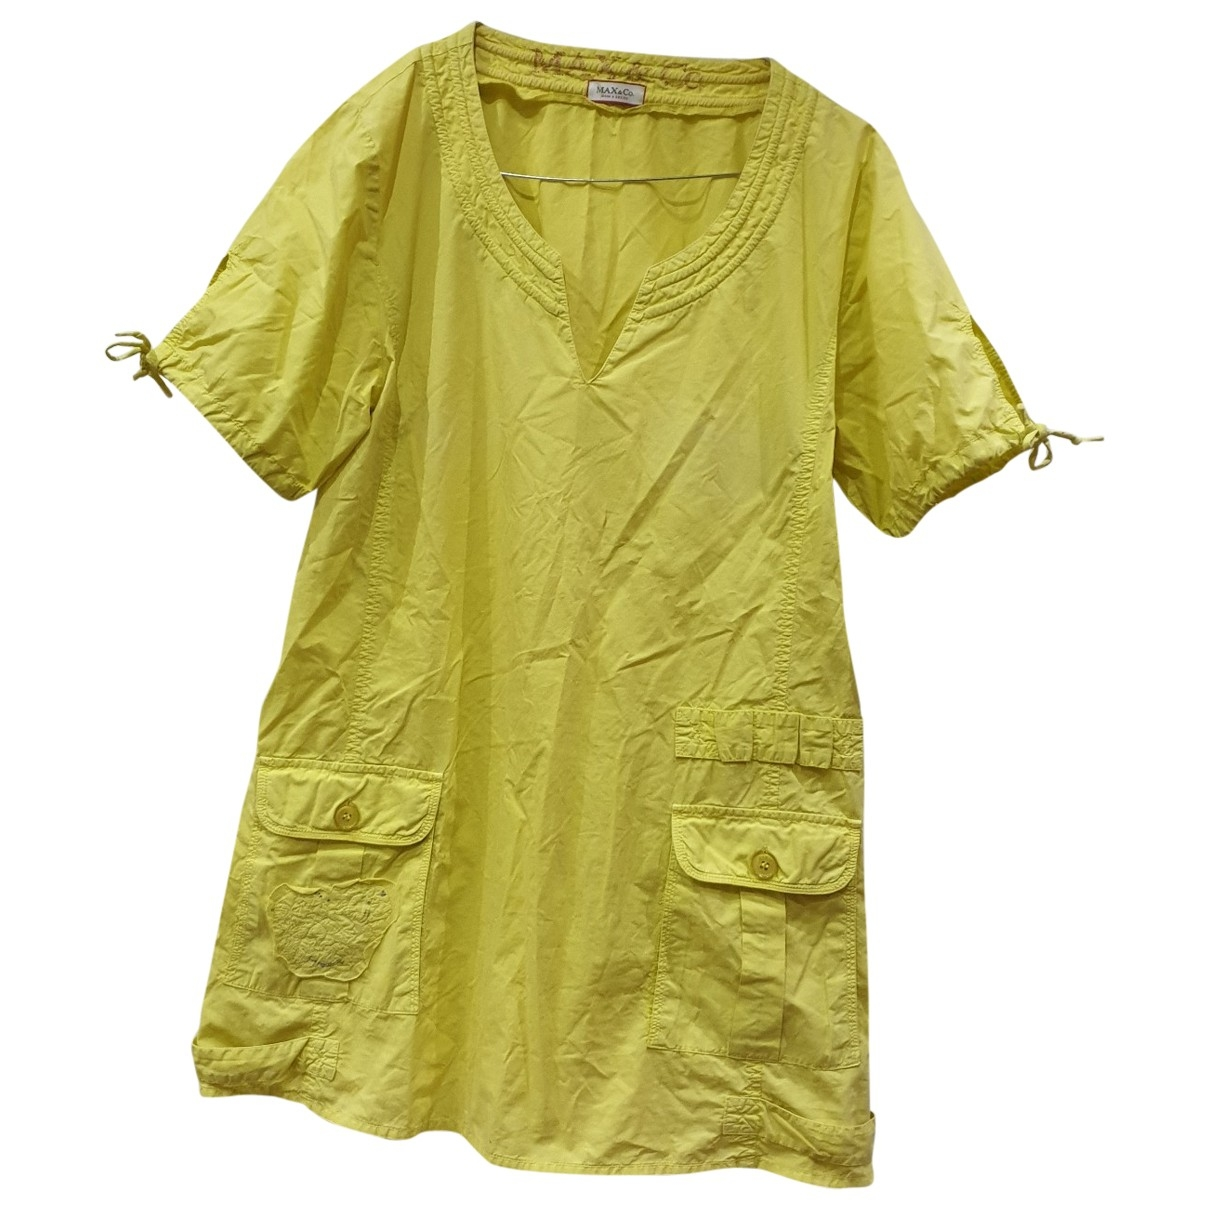 Max & Co \N Yellow Cotton dress for Women 42 IT